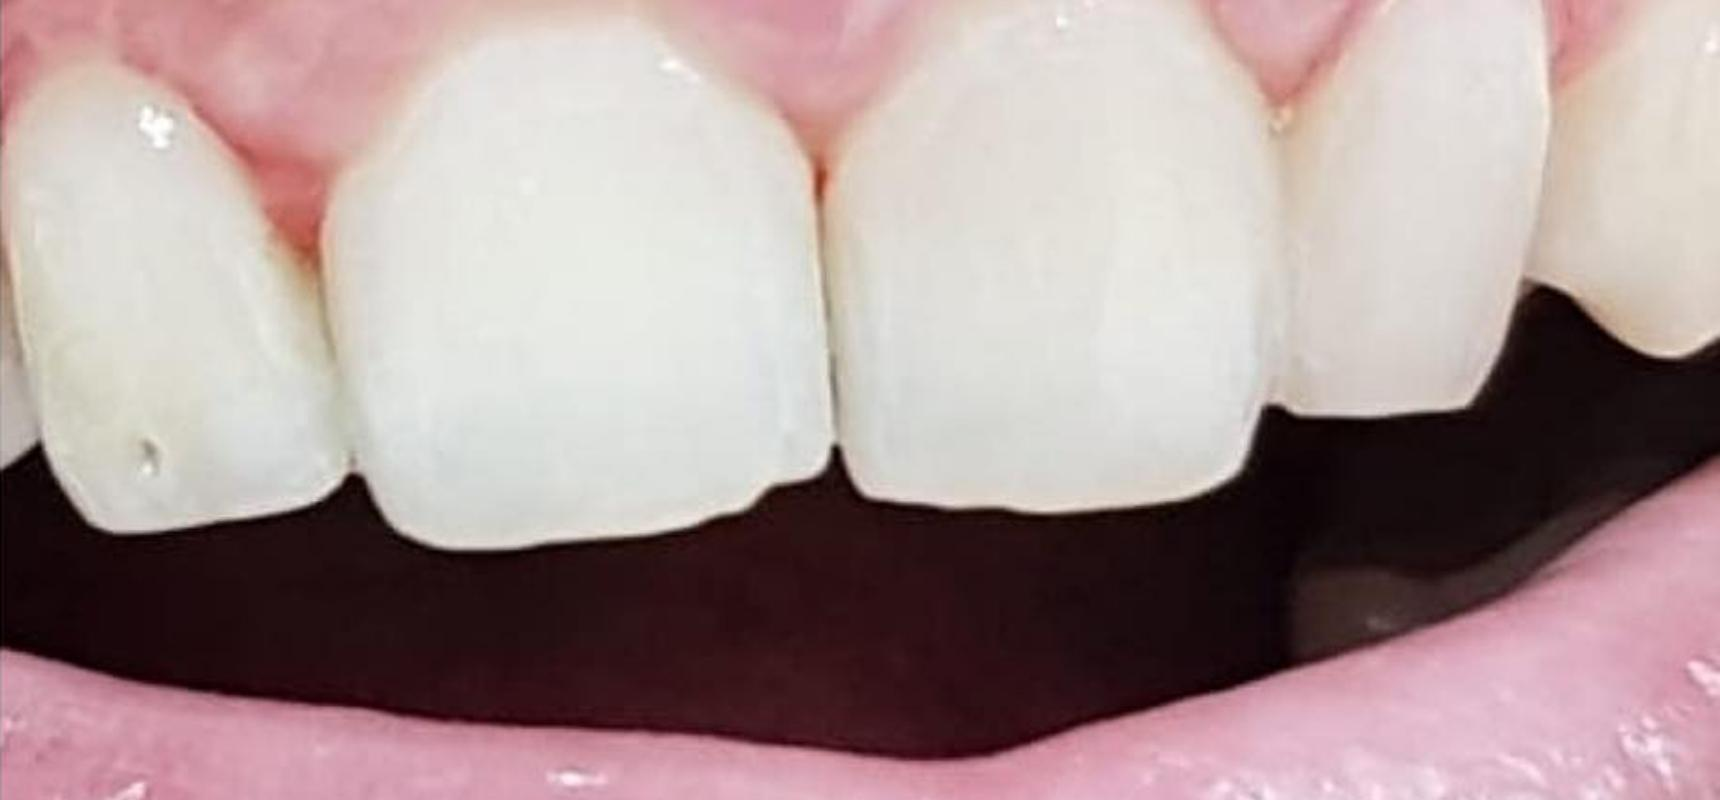 After-Closing the space between the front teeth by using cosmetic fillings.